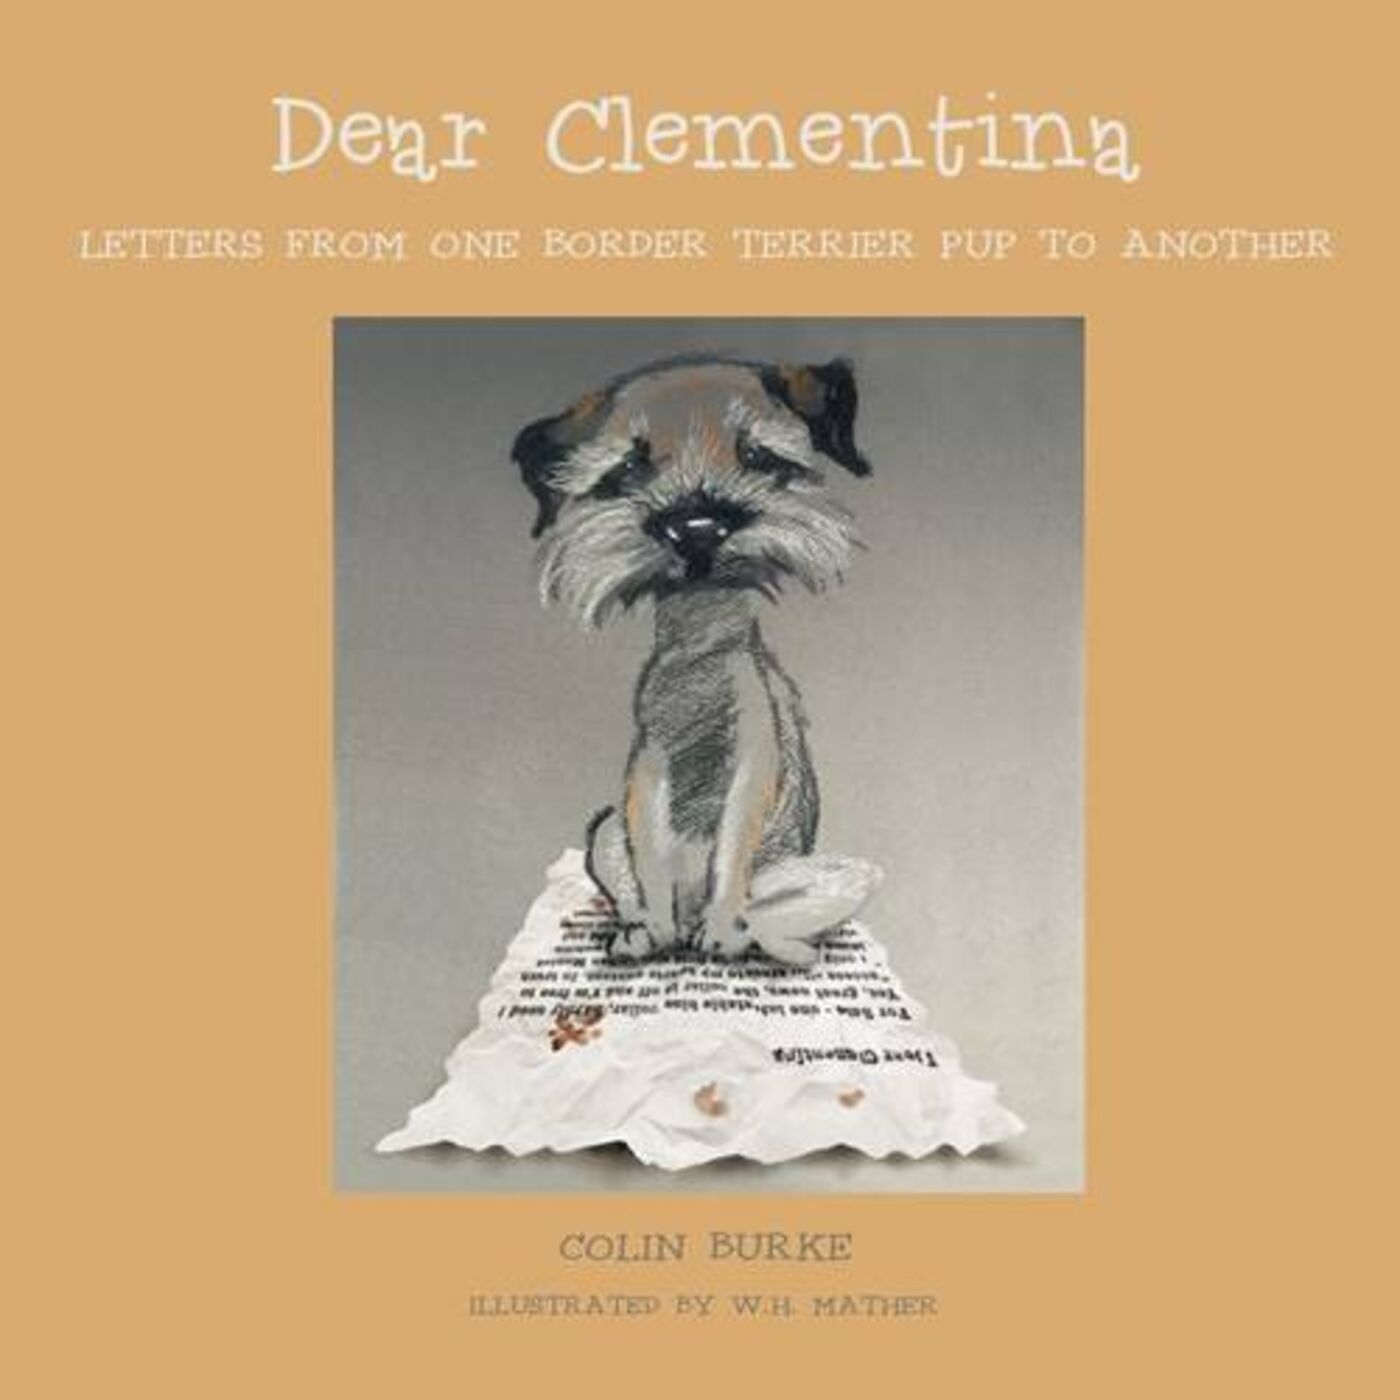 Dear Clementina Chapter 23 - Gelert Read it and Cry